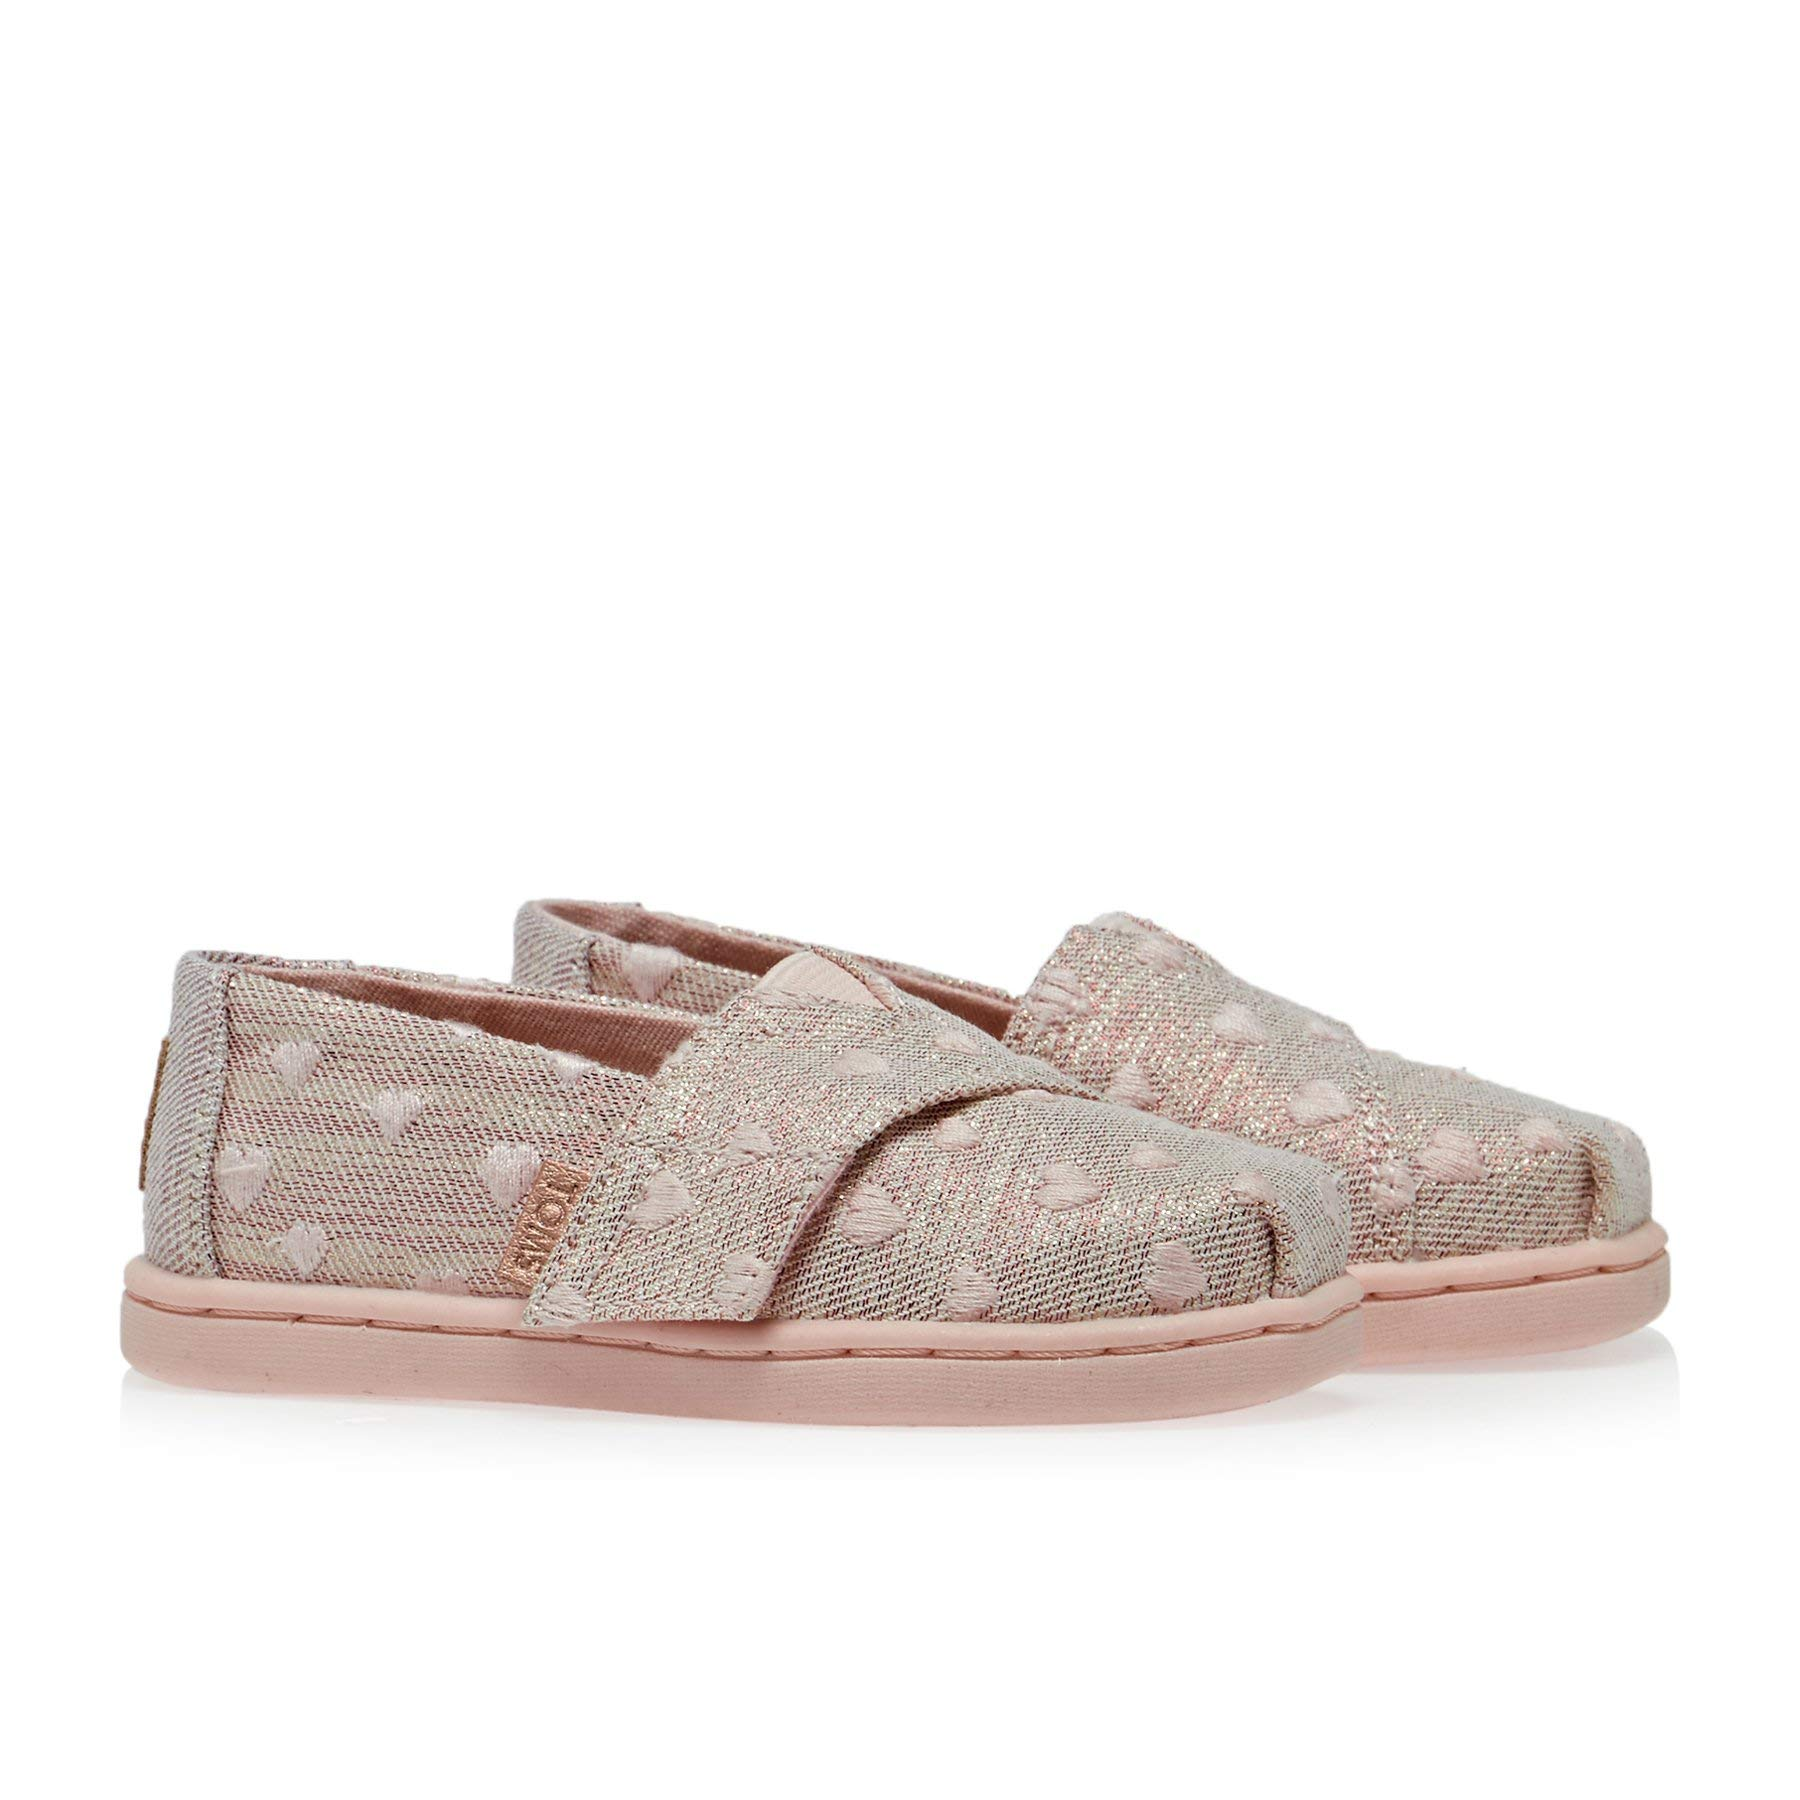 TOMS Kids Baby Girl's Alpargata (Toddler/Little Kid) Rose Cloud Heartsy Twill Glimmer Embroidery 11 M US Little Kid by TOMS Kids (Image #4)